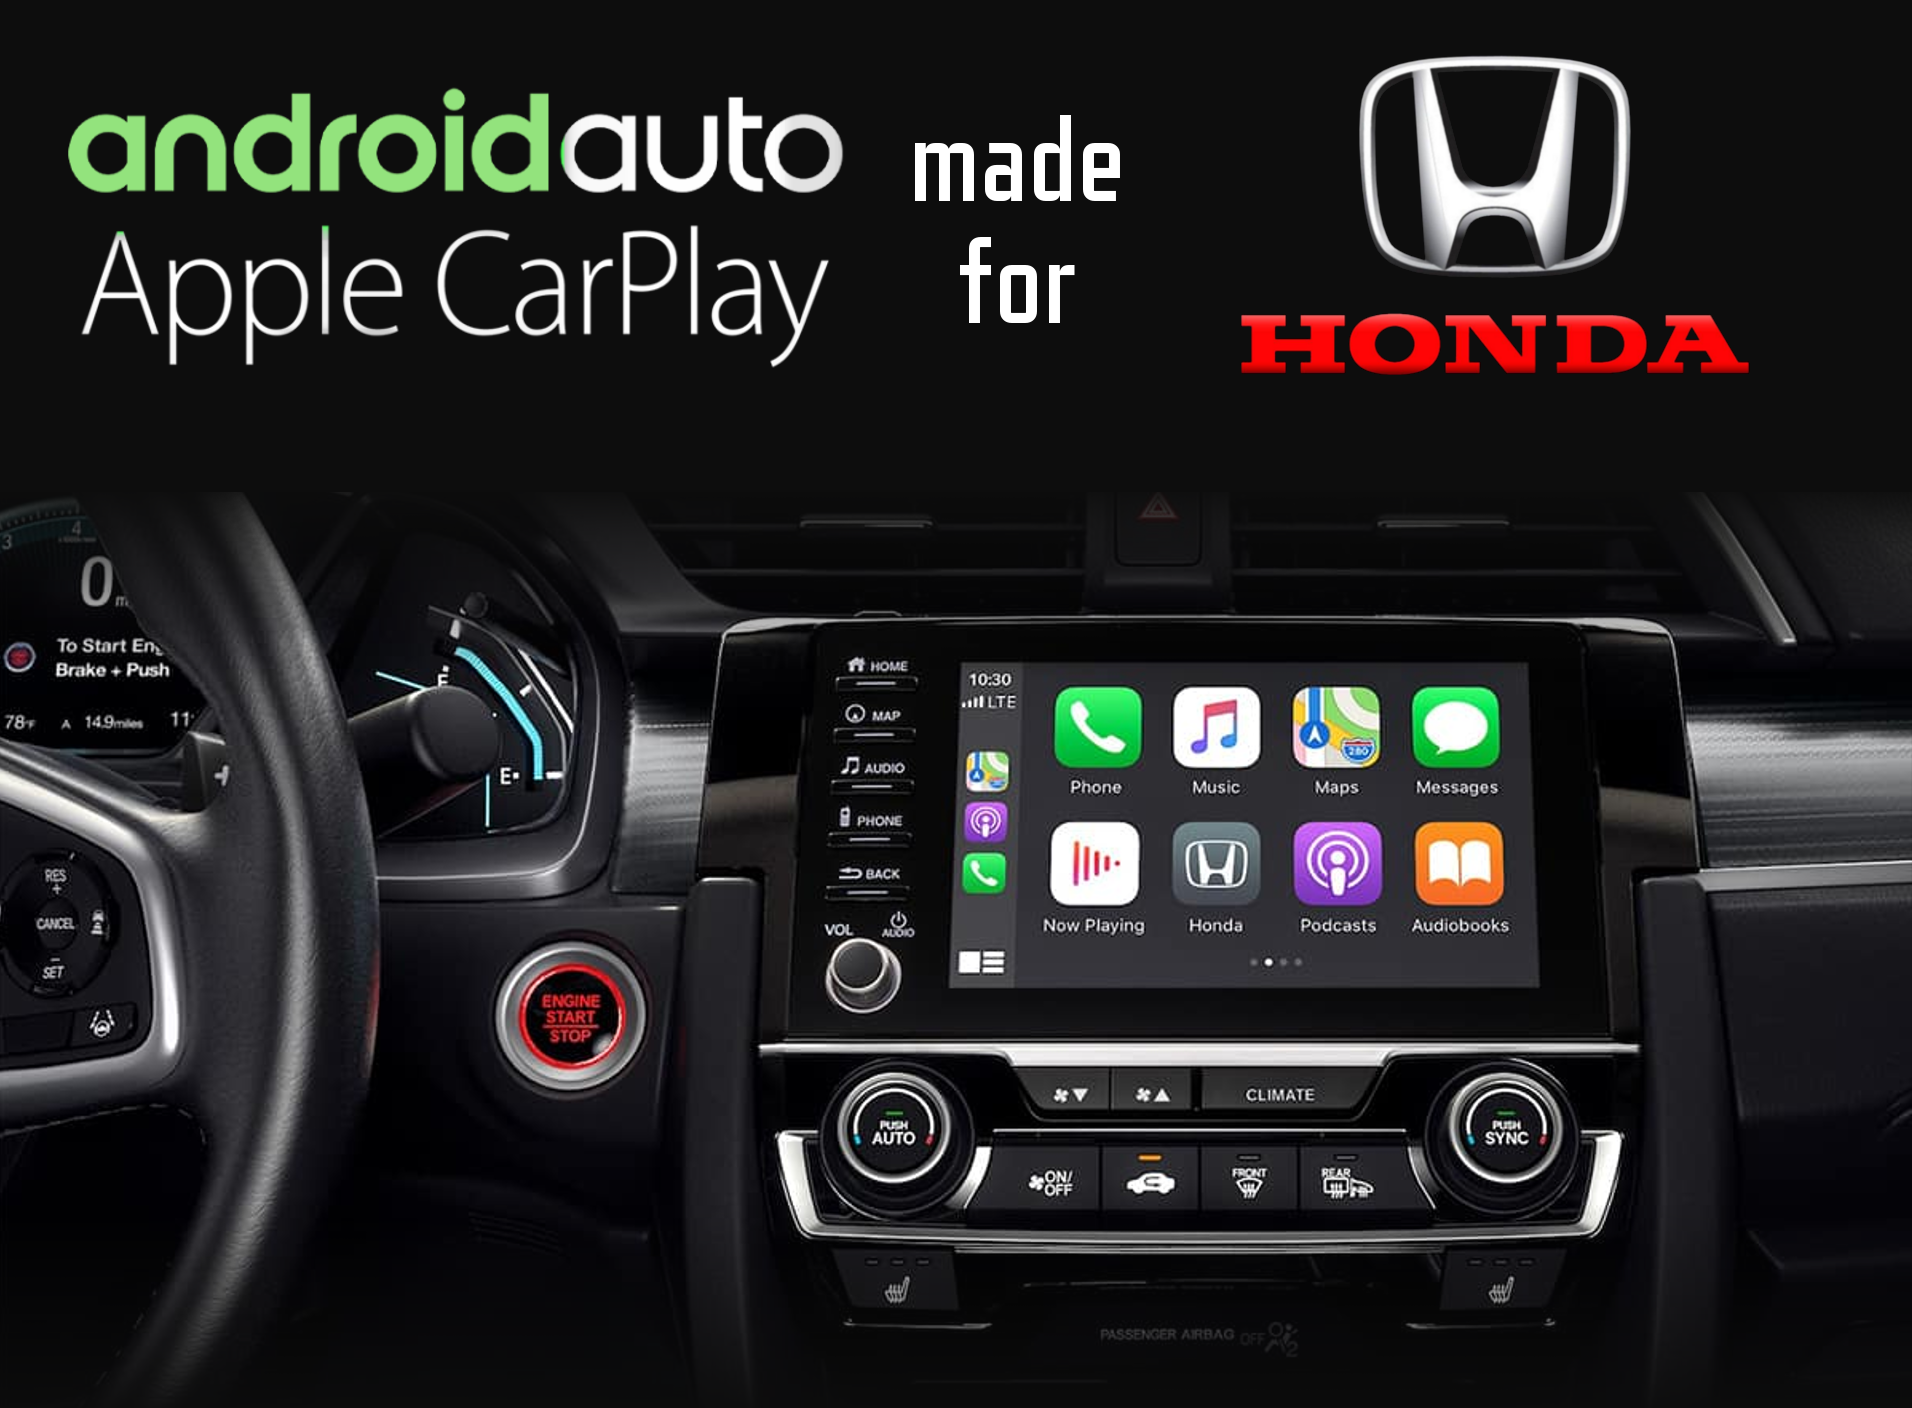 Aftermarket Apple Carplay, Android Auto integration for Honda factory radio screens for Accord, Odyssey